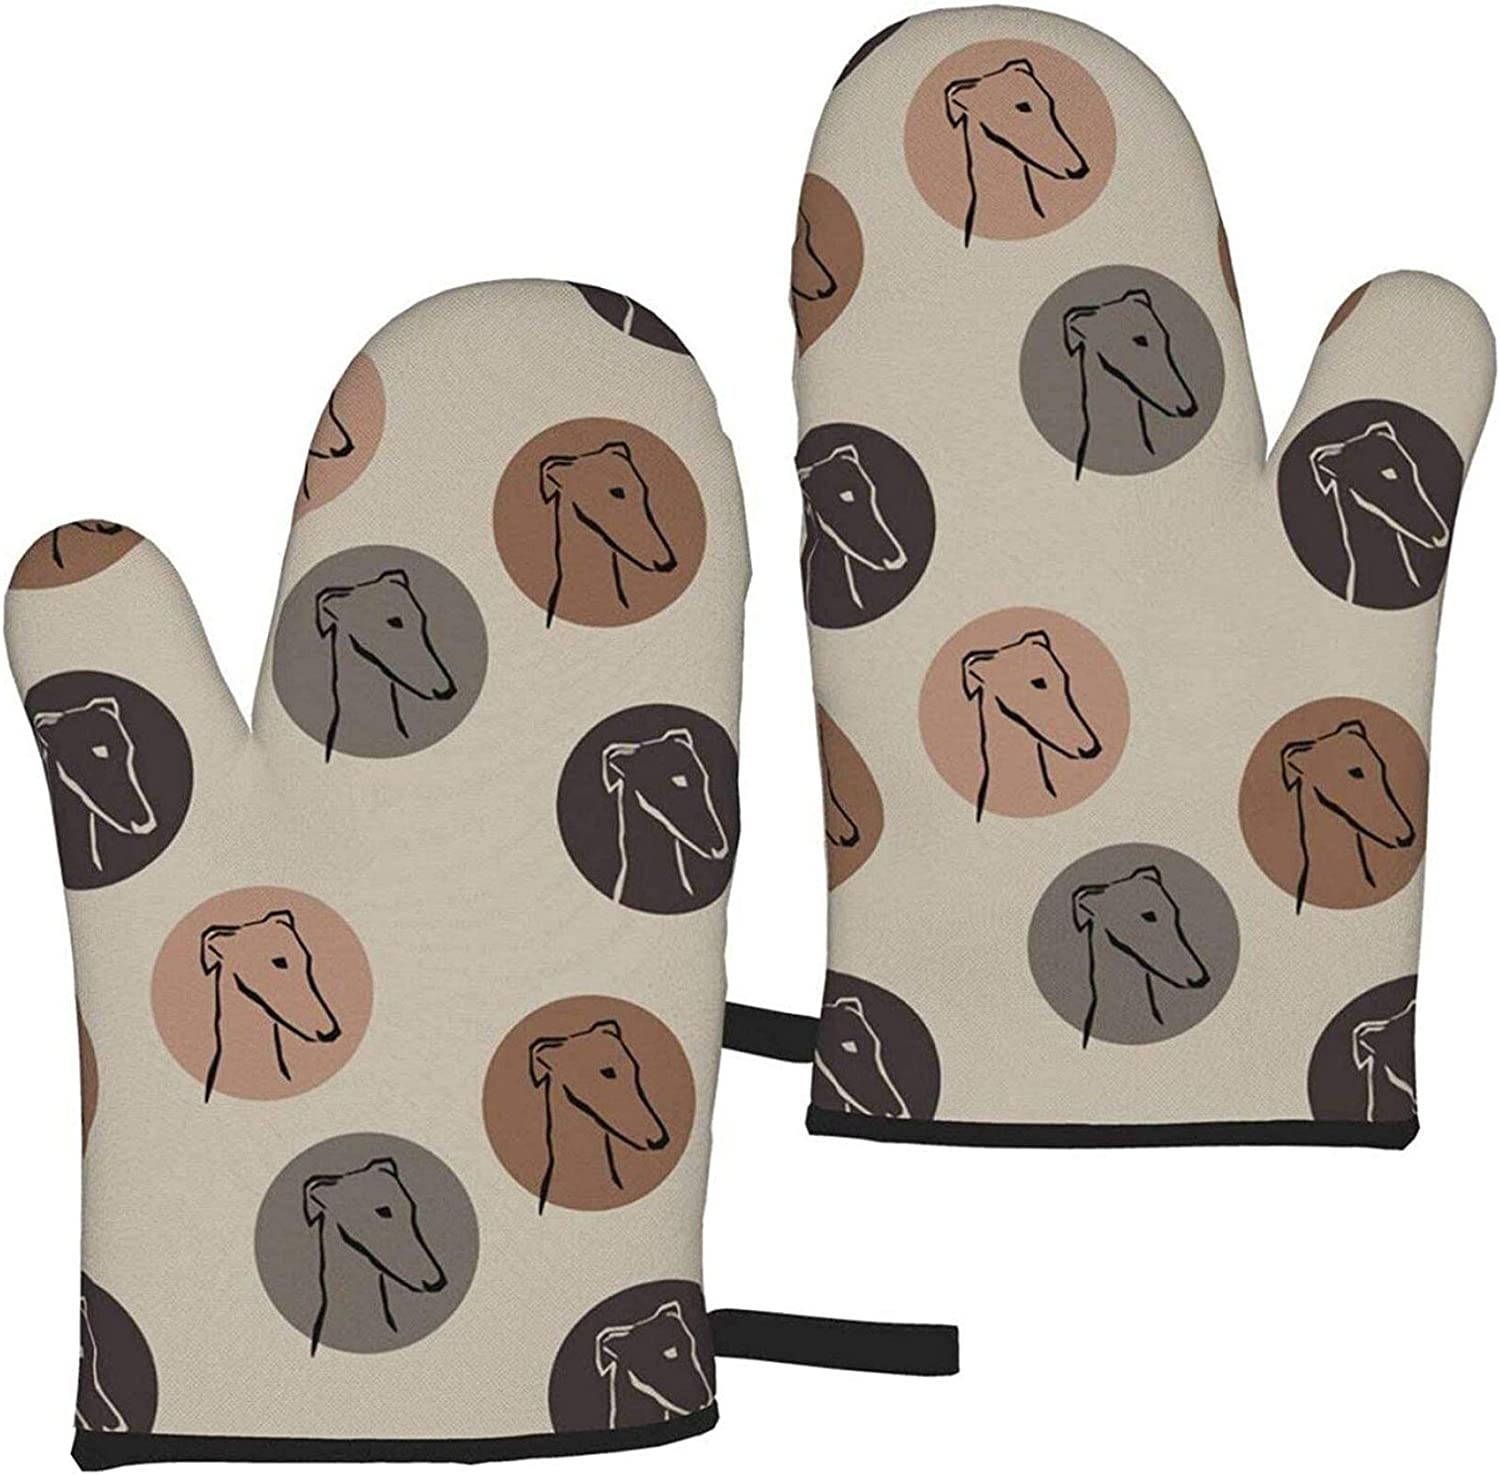 Greyhound Sighthounds 1 Pair of Oven Mitts Heat-Resistant Microwave Oven Gloves for Cooking BBQ Baking